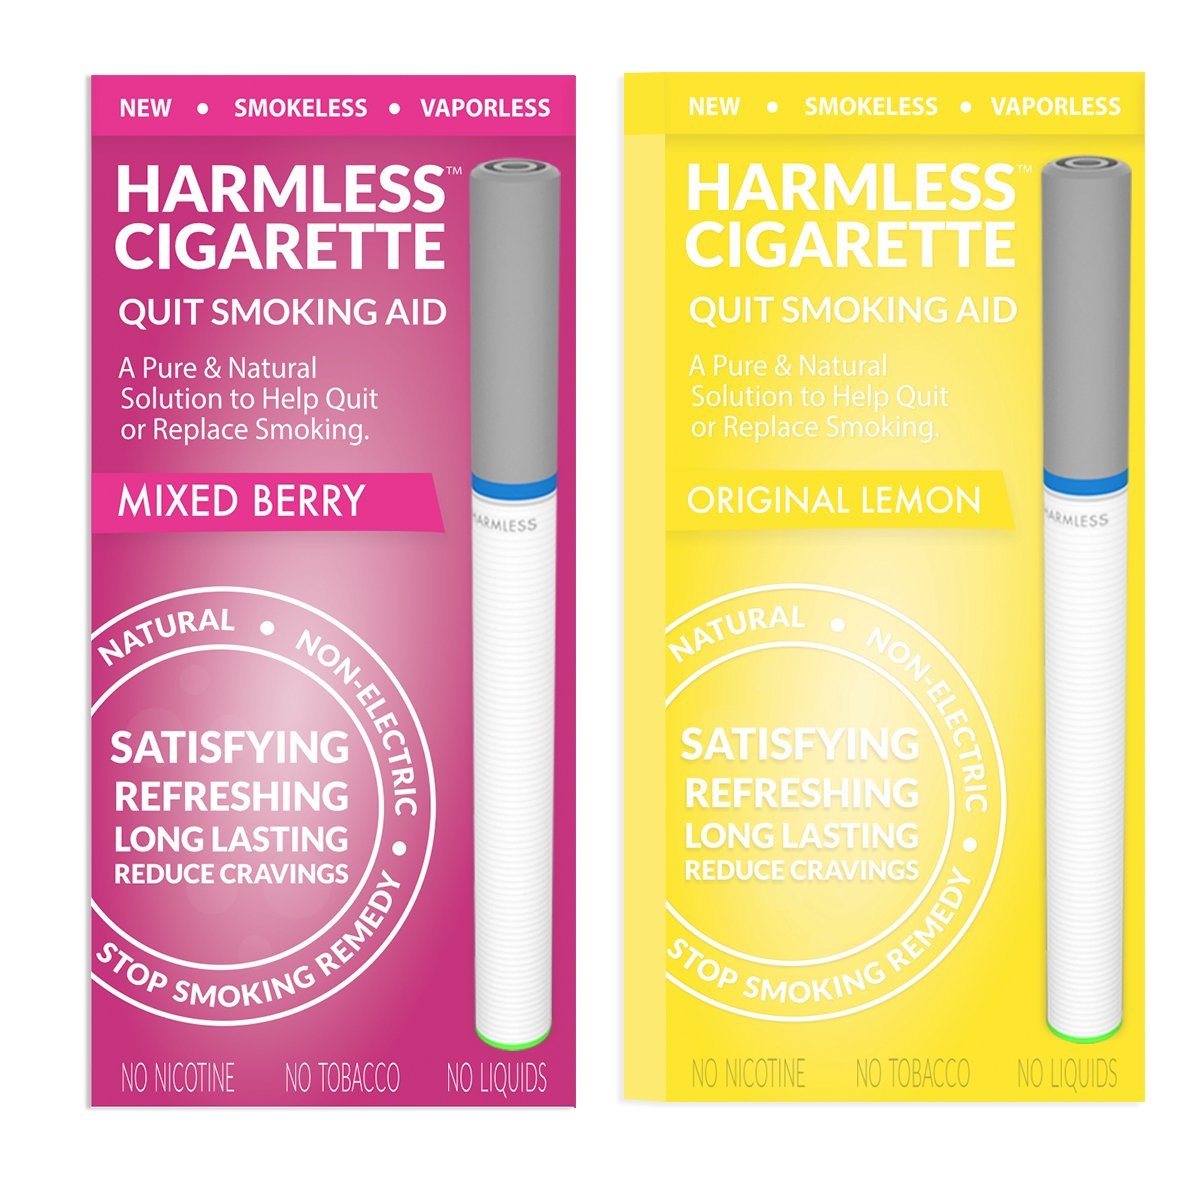 Harmless Cigarette | New Smoking Cessation Product To Help You Quit Smoking Easy & Naturally. Now Better Than Patches, Gum, Pills, Spray, Lozenges, Tea & Magnet. (2 Pack, Original Lemon/Mixed Berry)